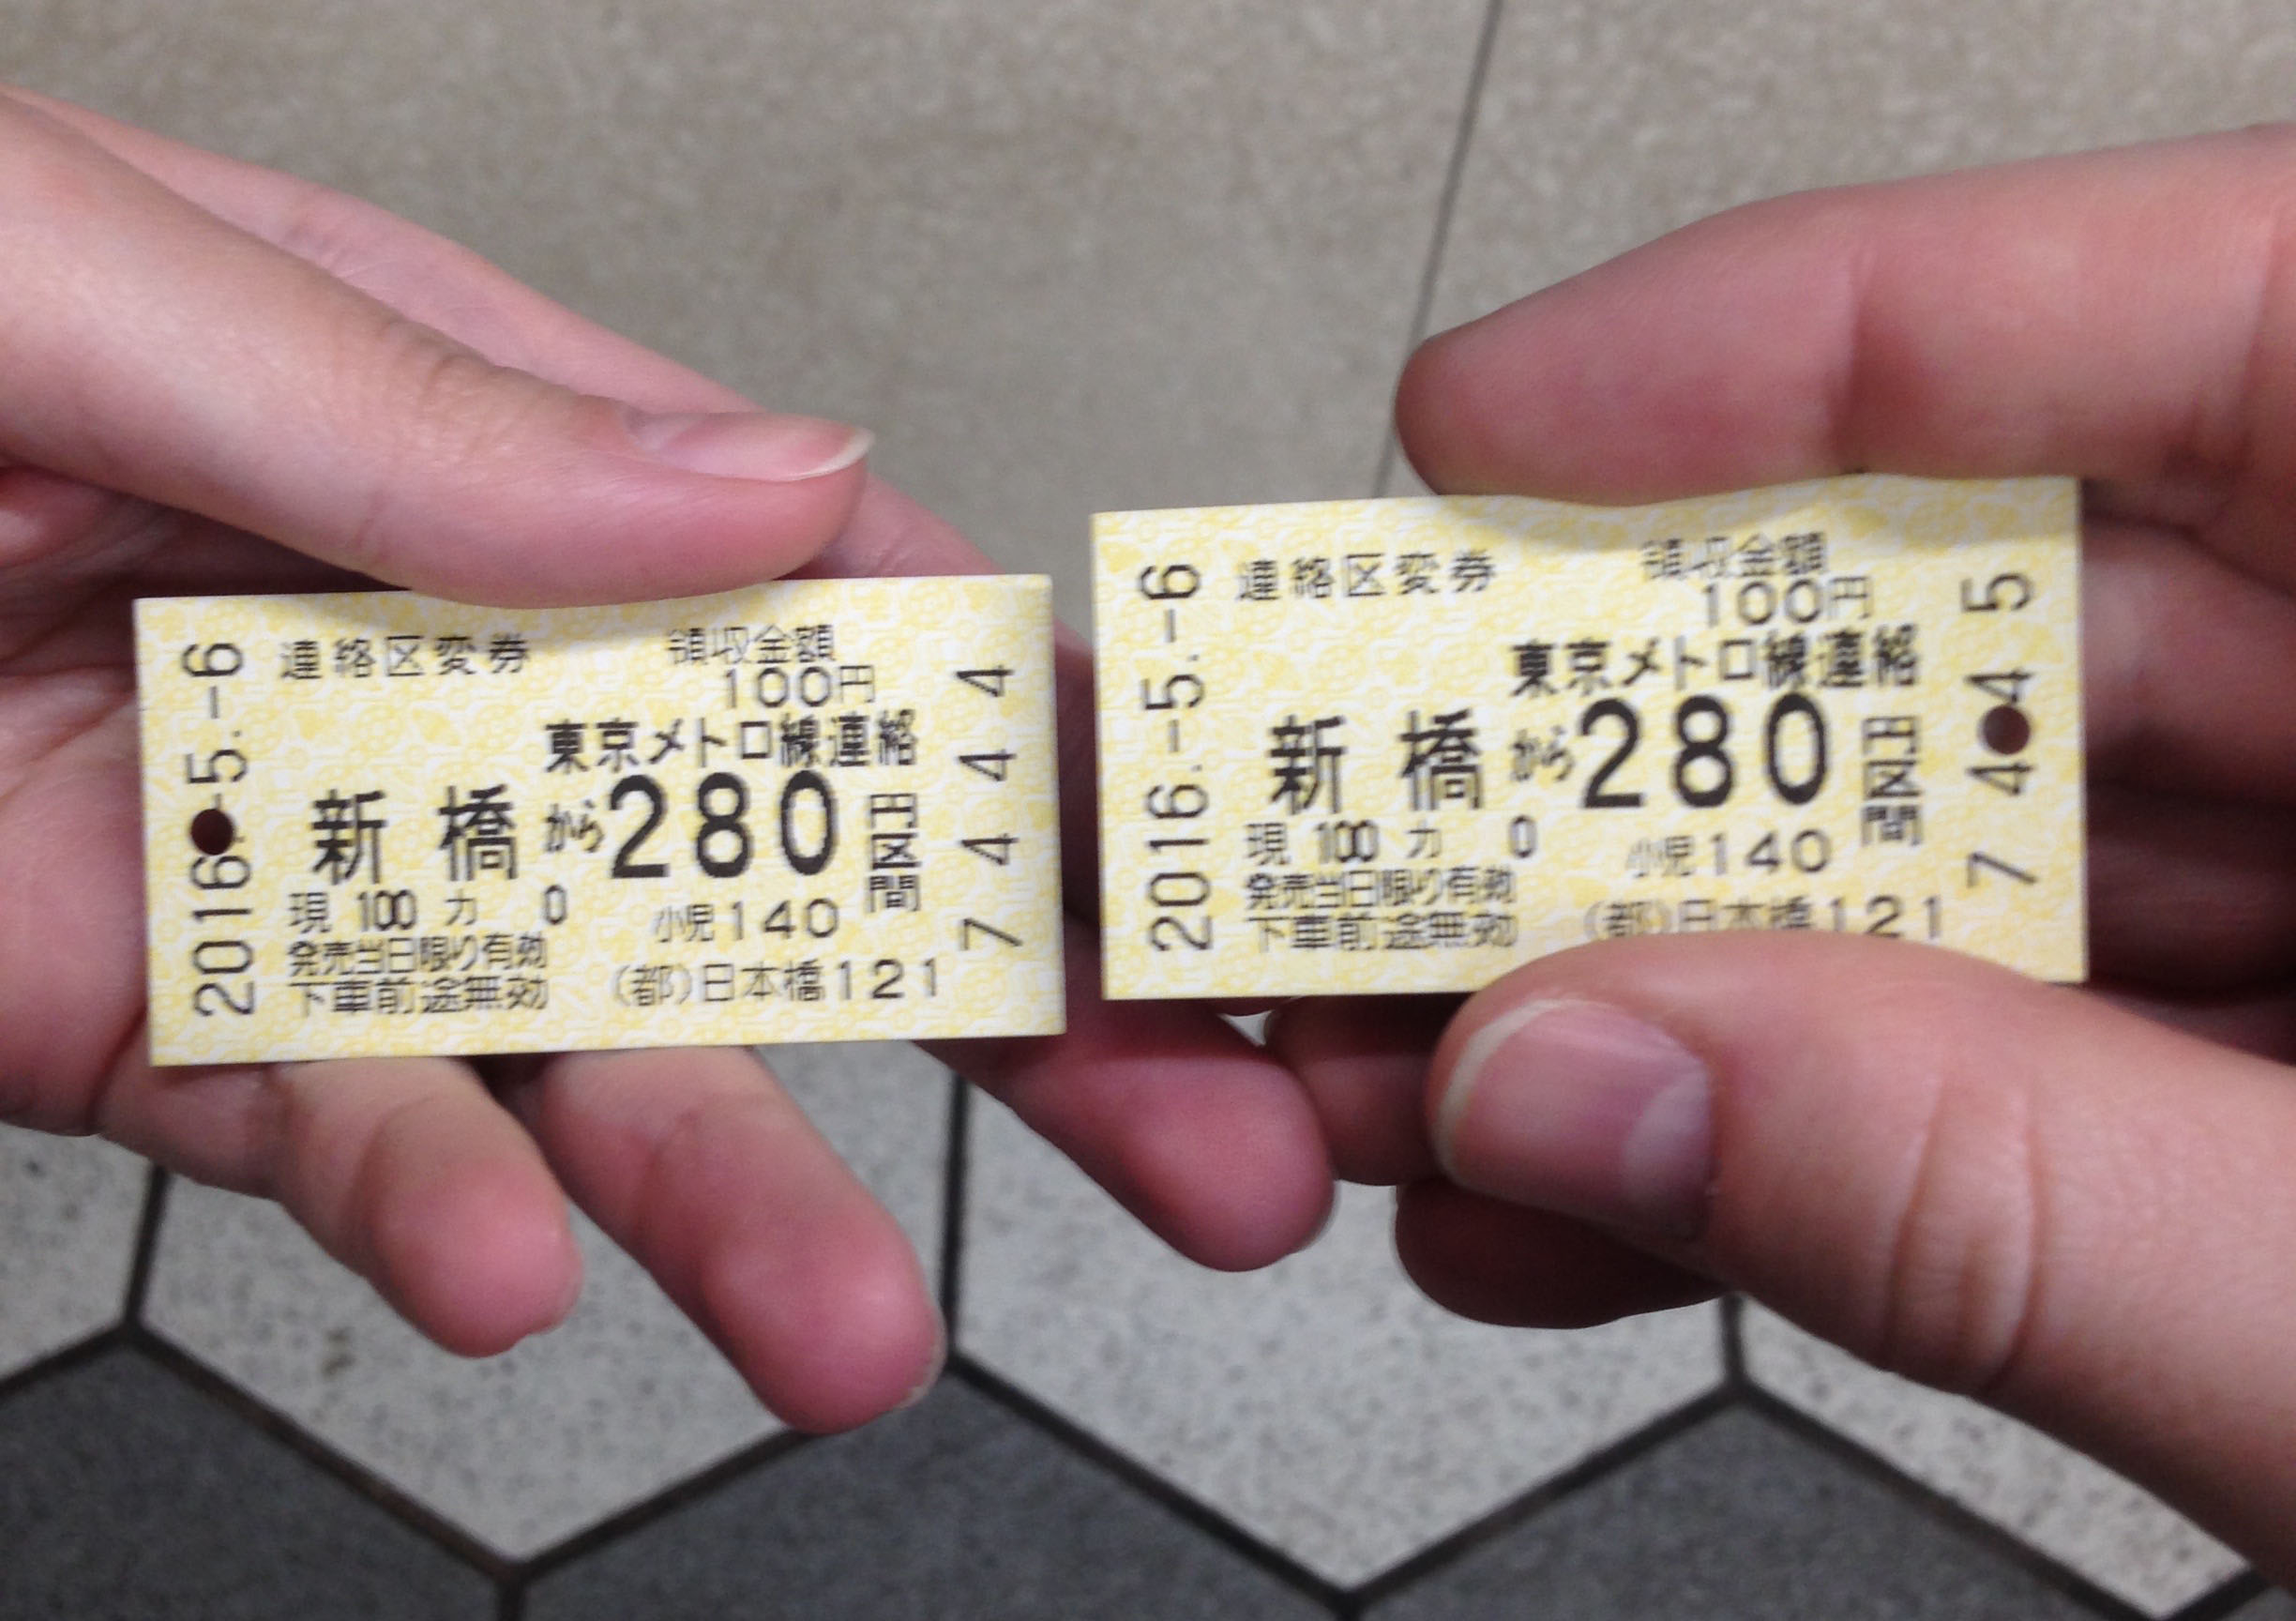 Our tiny tiny train tickets for the Tokyo Metro!